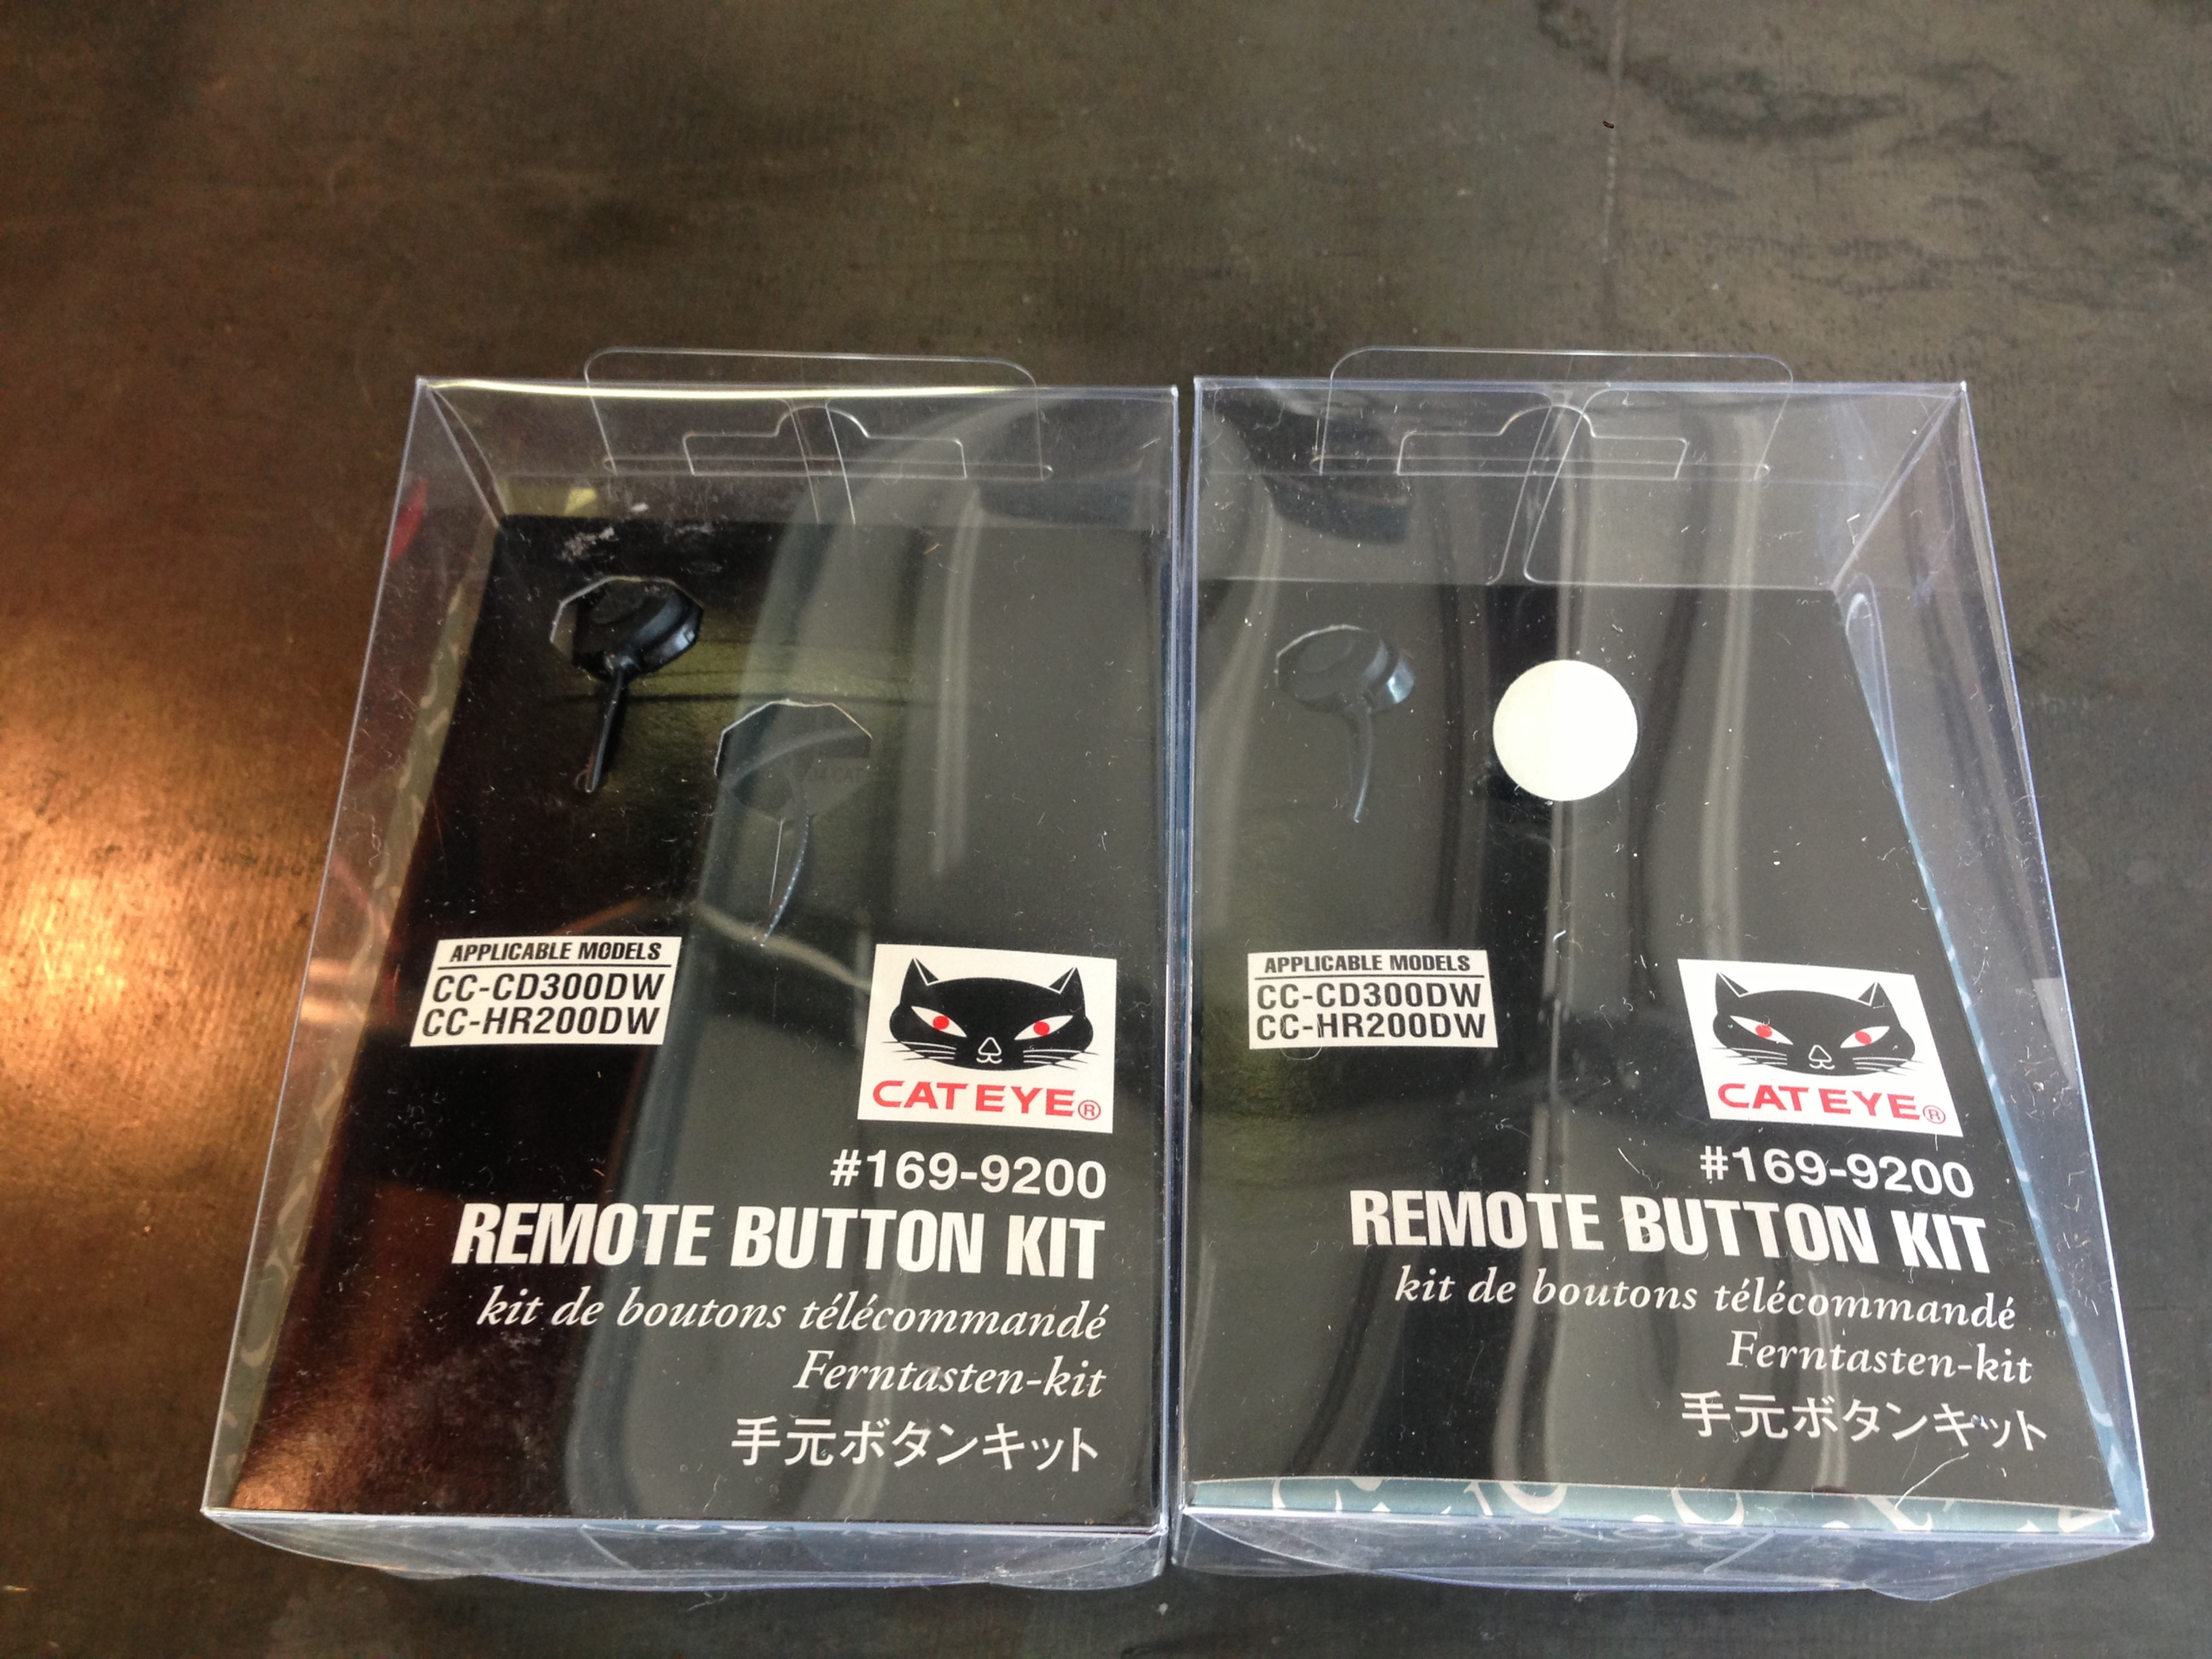 You need two sets. One set for each side/derailleur.